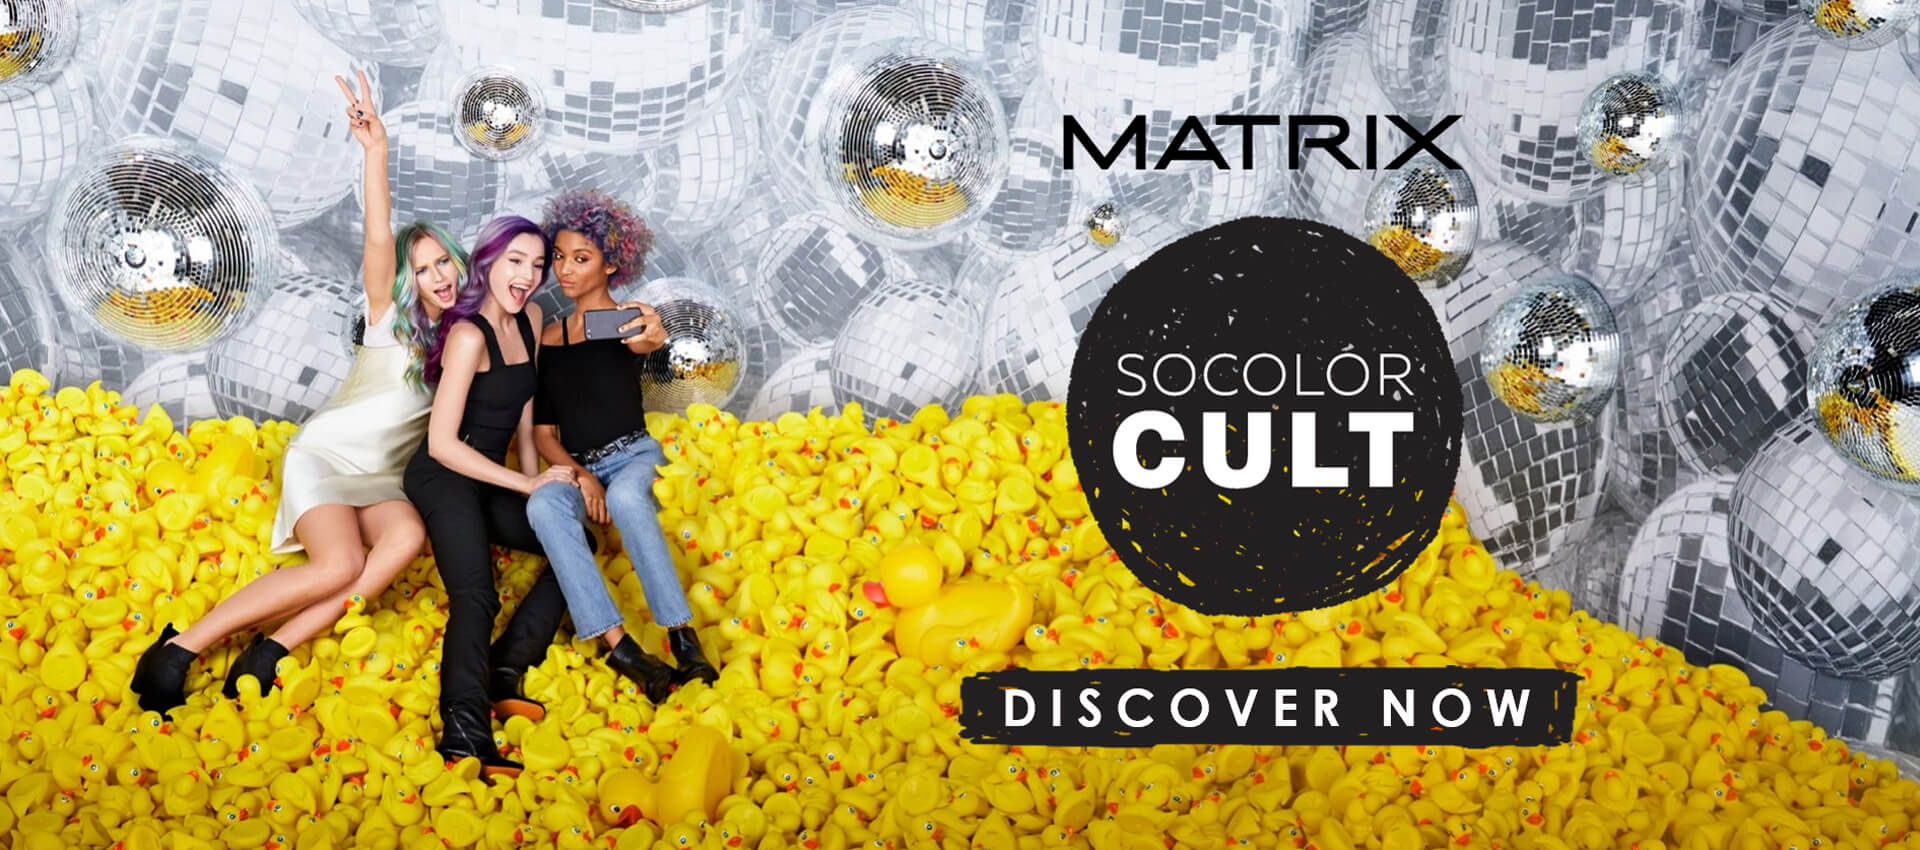 Homepage-Banner-Matri-so-color-cult-Kraken.jpg